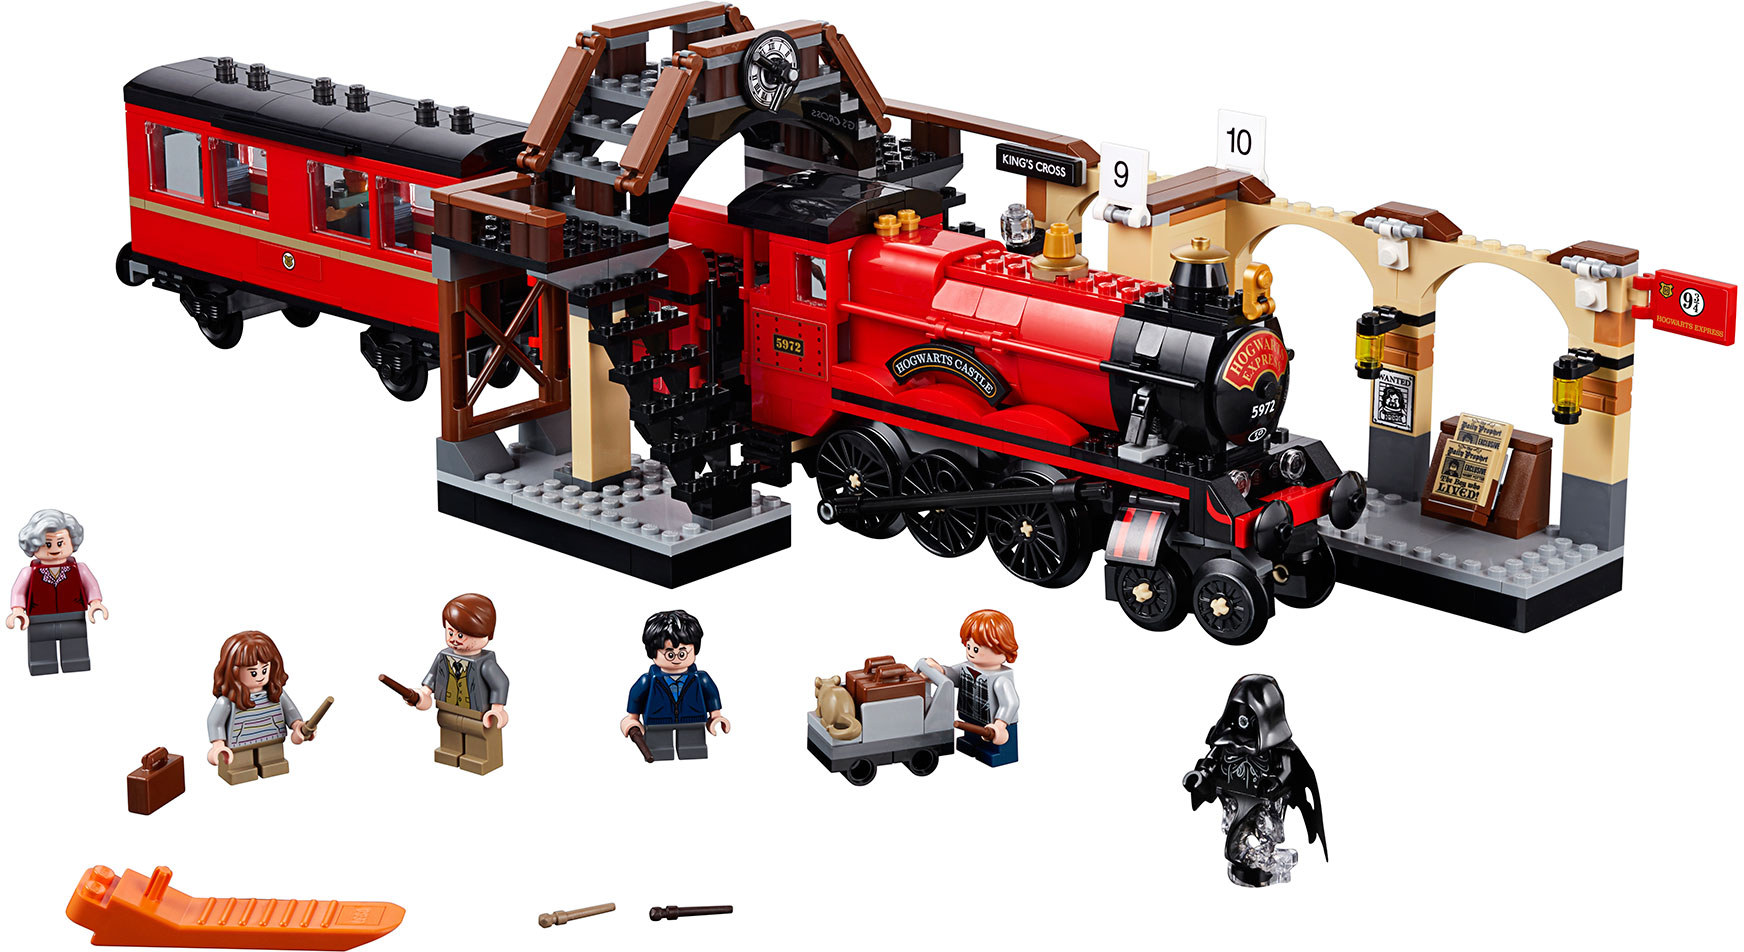 LEGO Harry Potter - Hogwarts Express (75955)